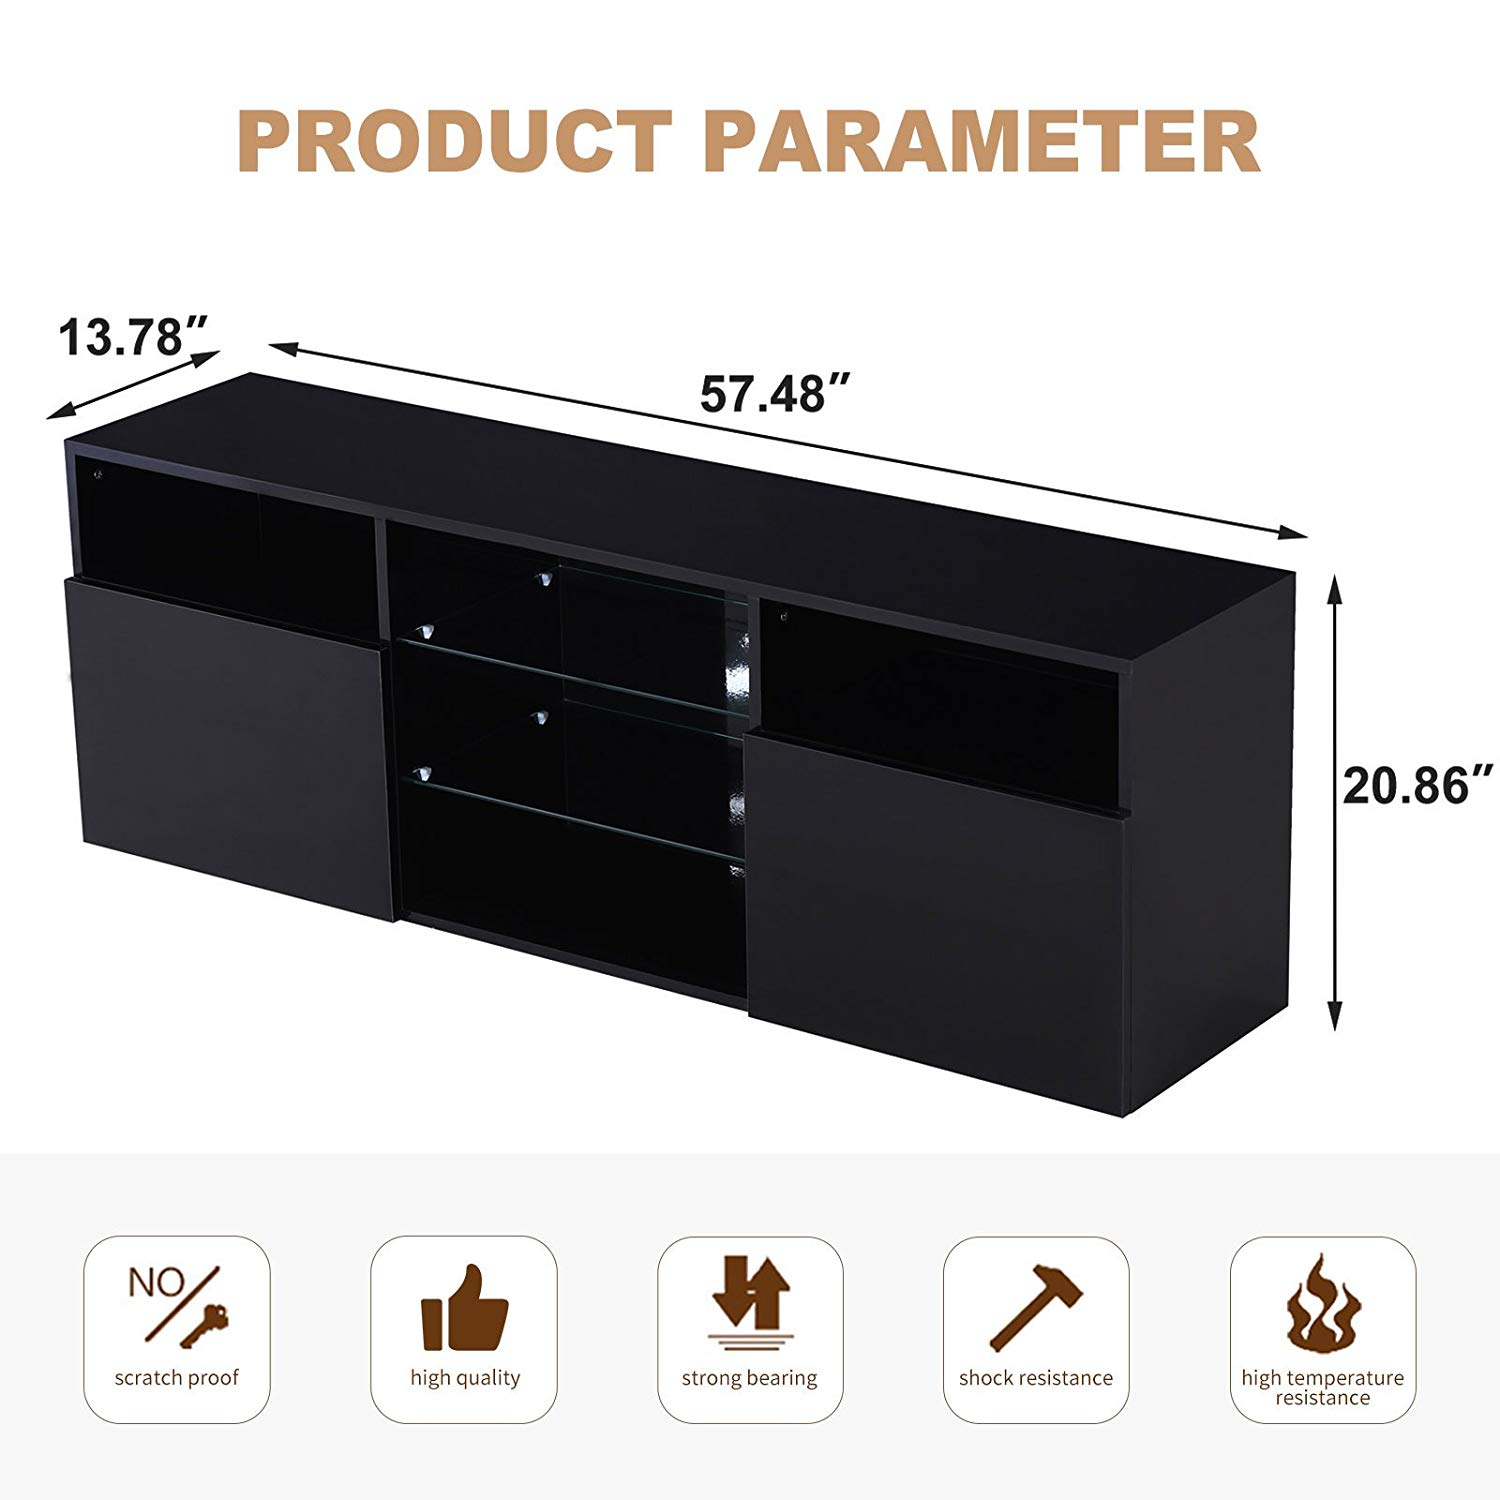 High Gloss Black Cabinet LED Tv Stand Shelves with 2 Drawers for Living Room Storage